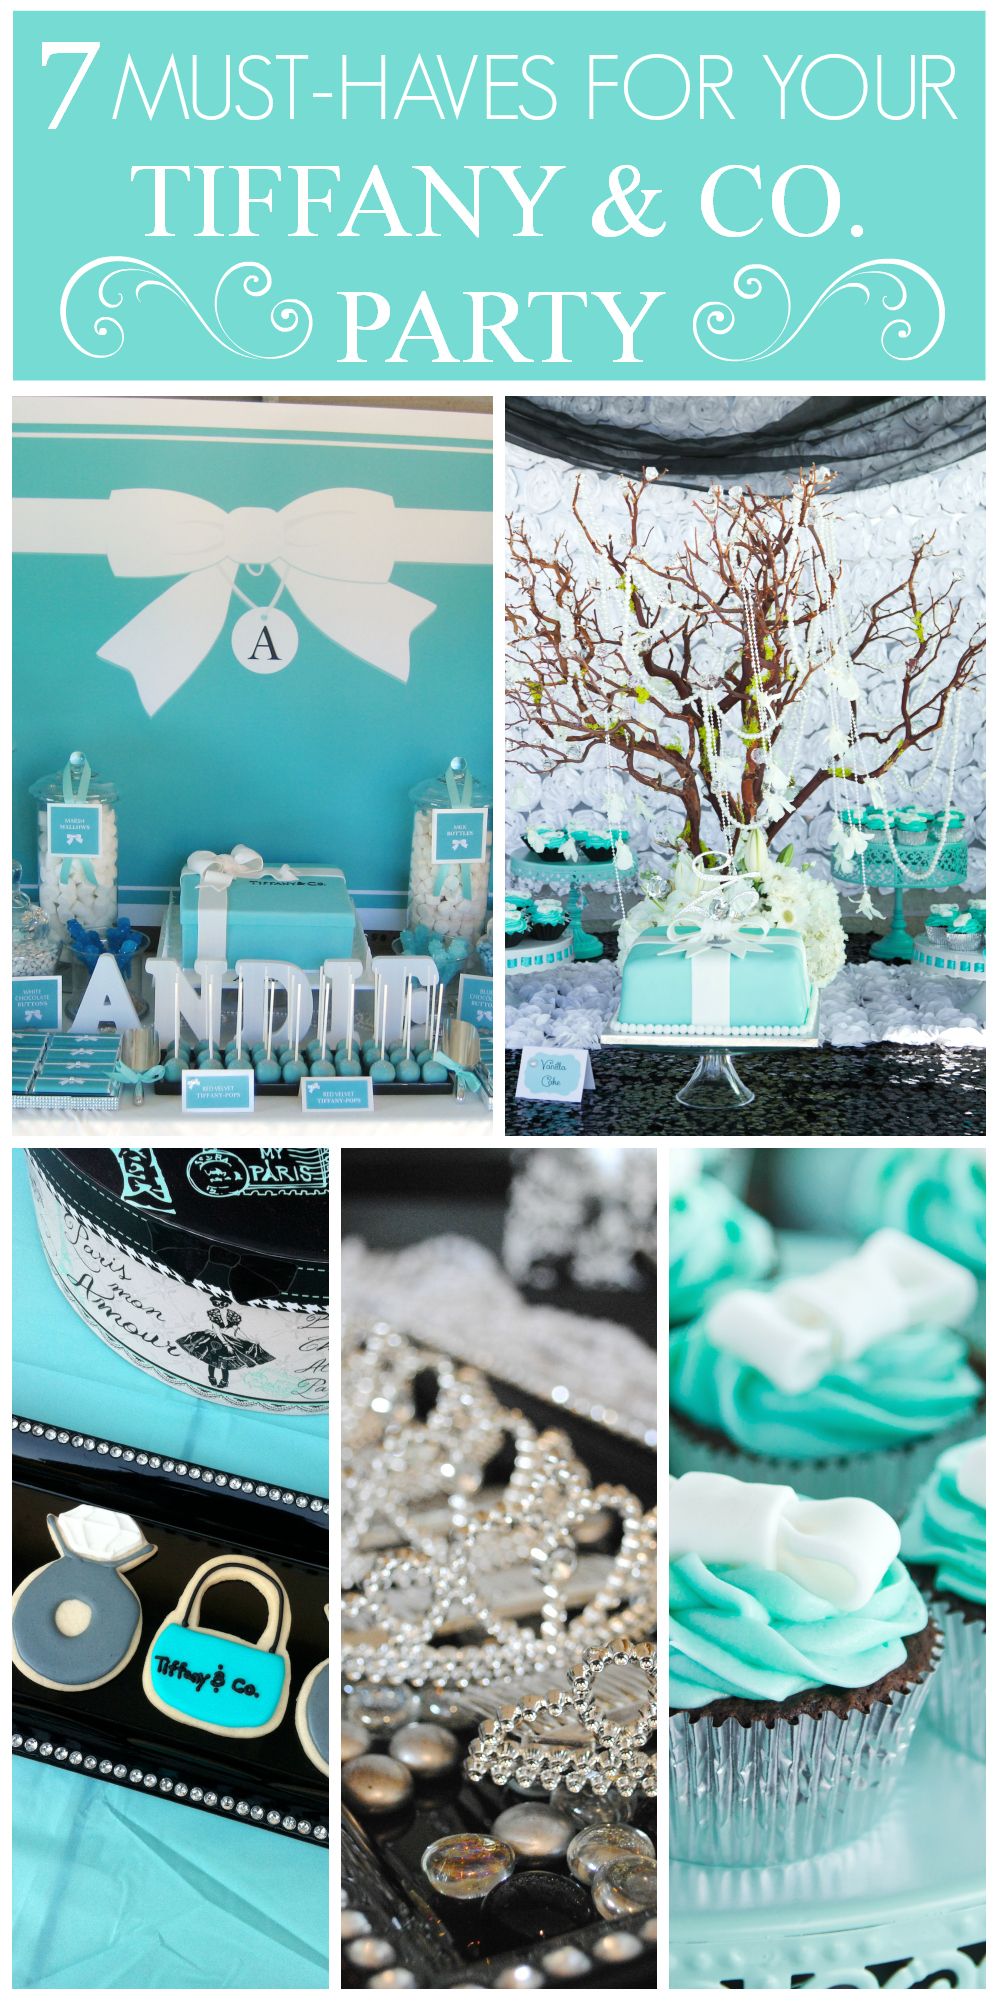 Light Blue clipart tiffany and co Parties party sweet birthdays girl